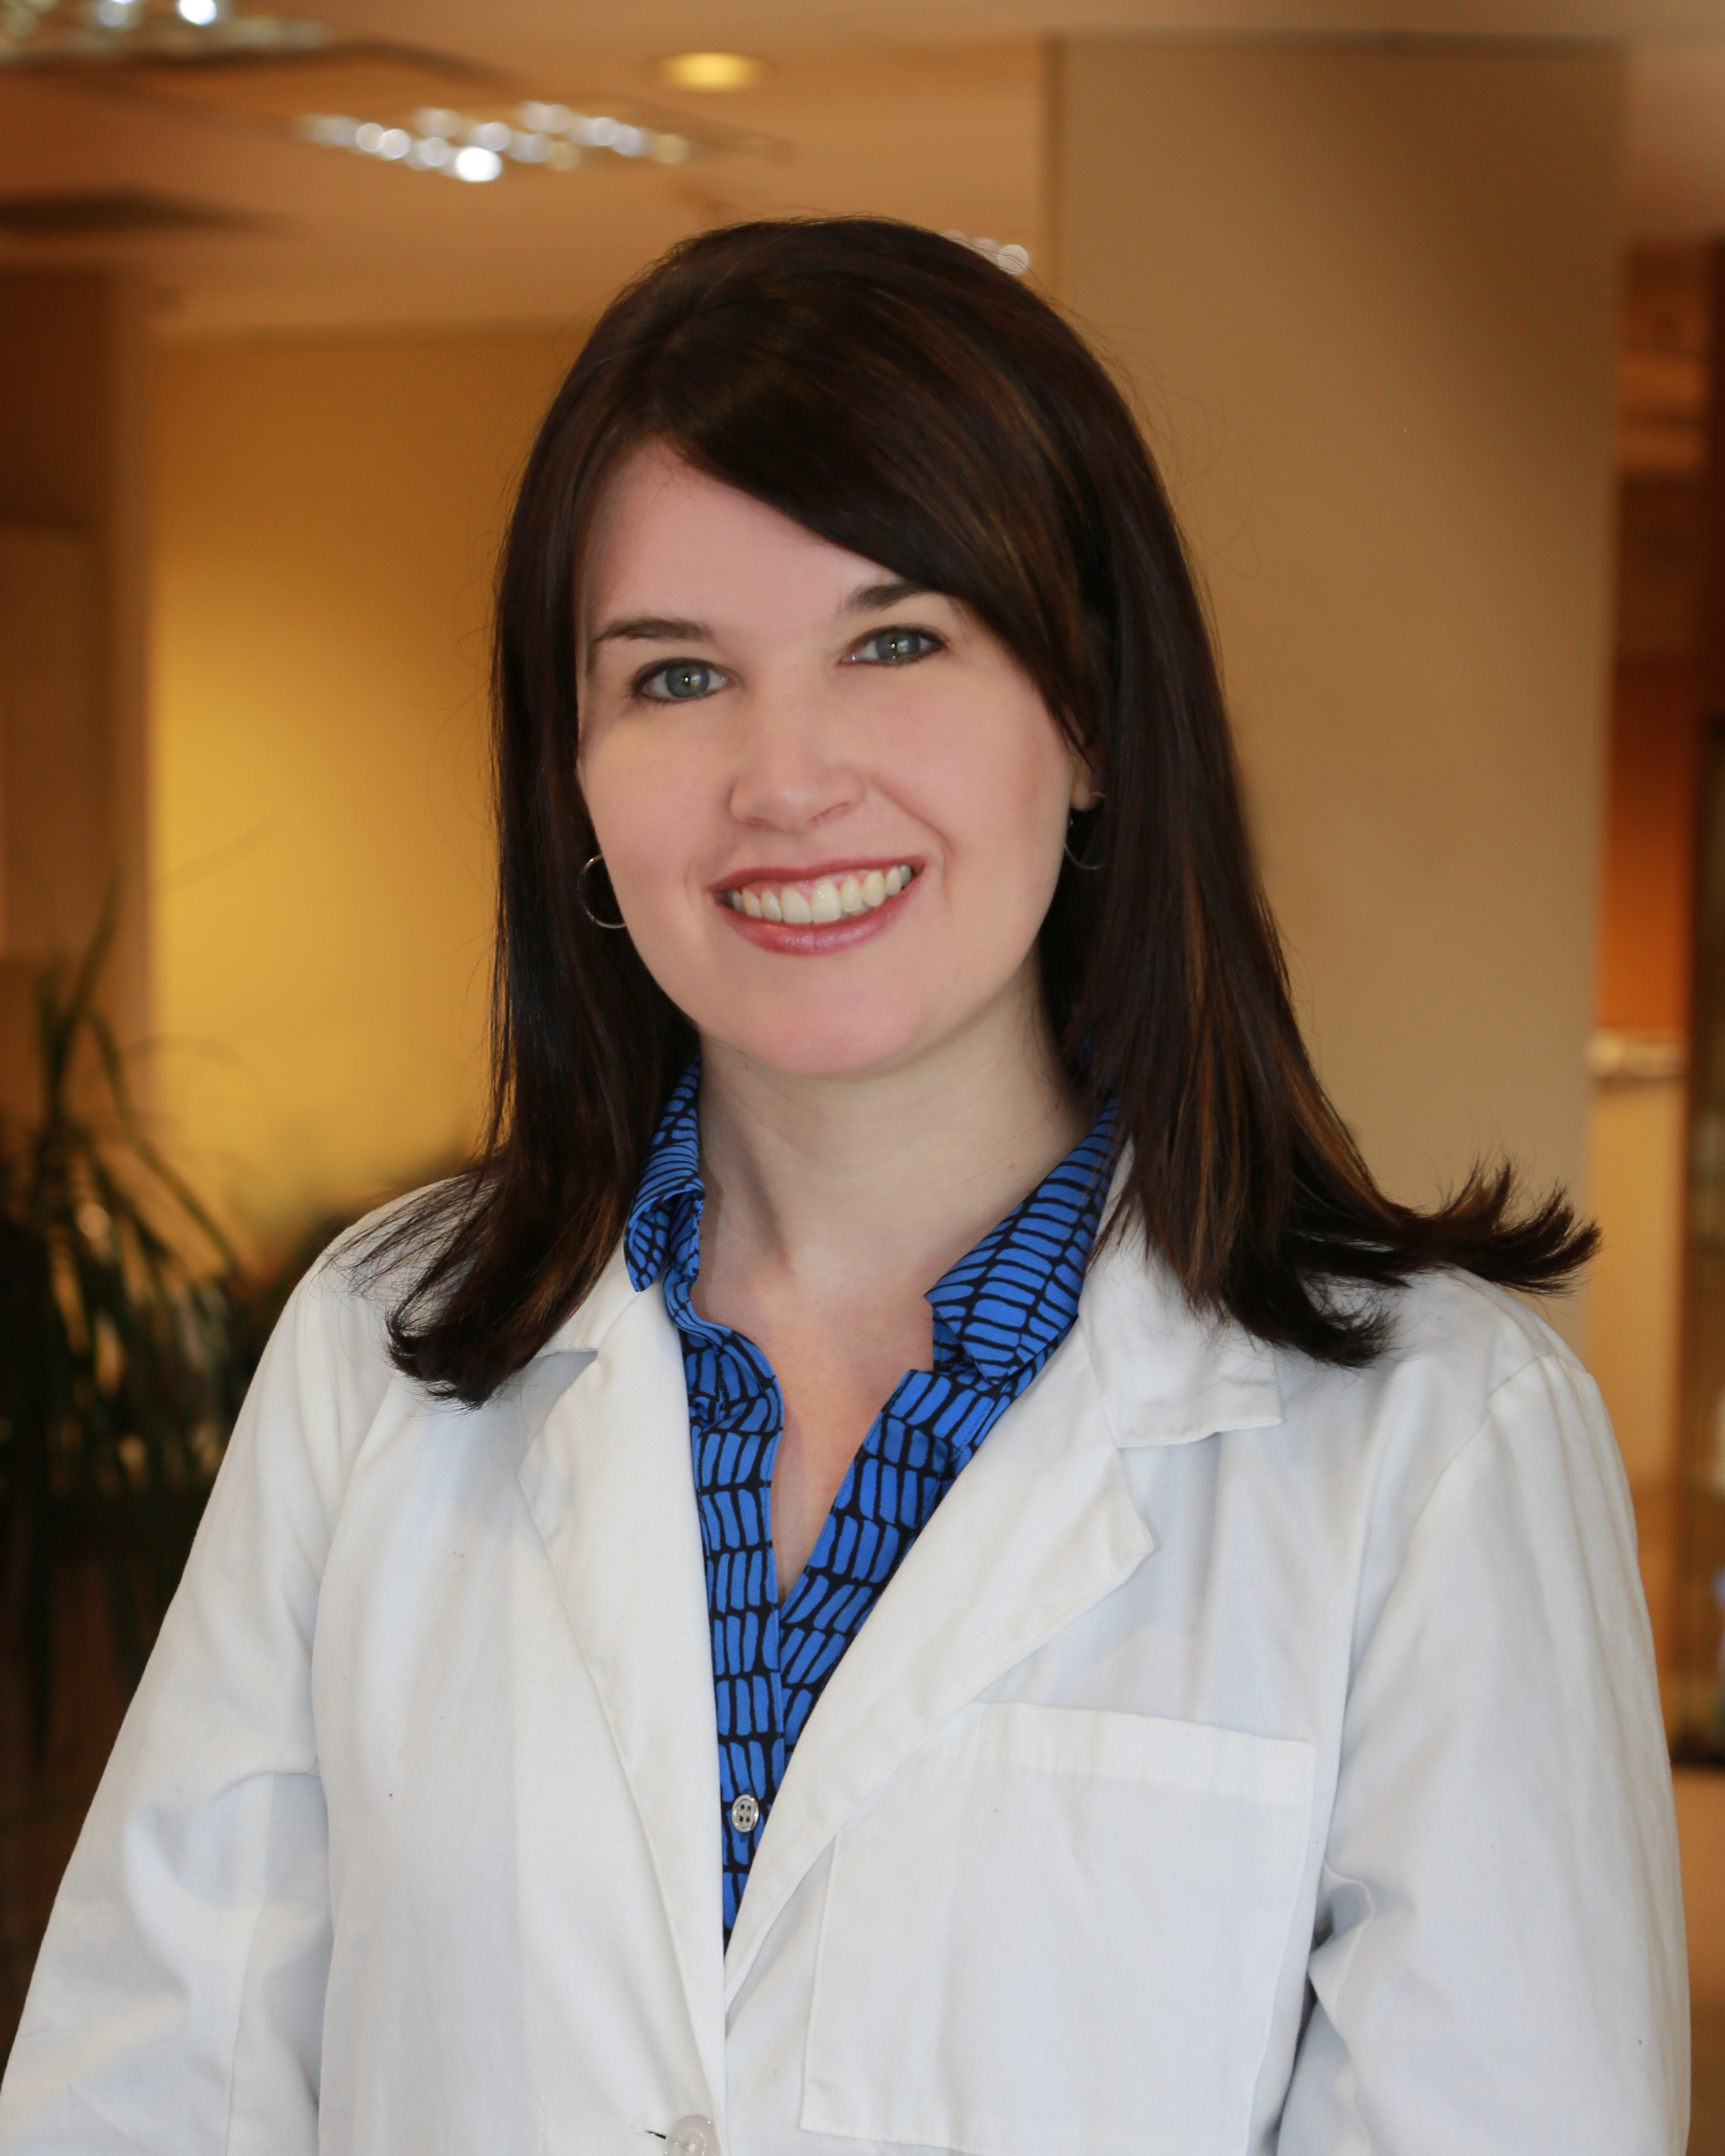 Doctor's Profile Picture at Denver Dermatology Specialists